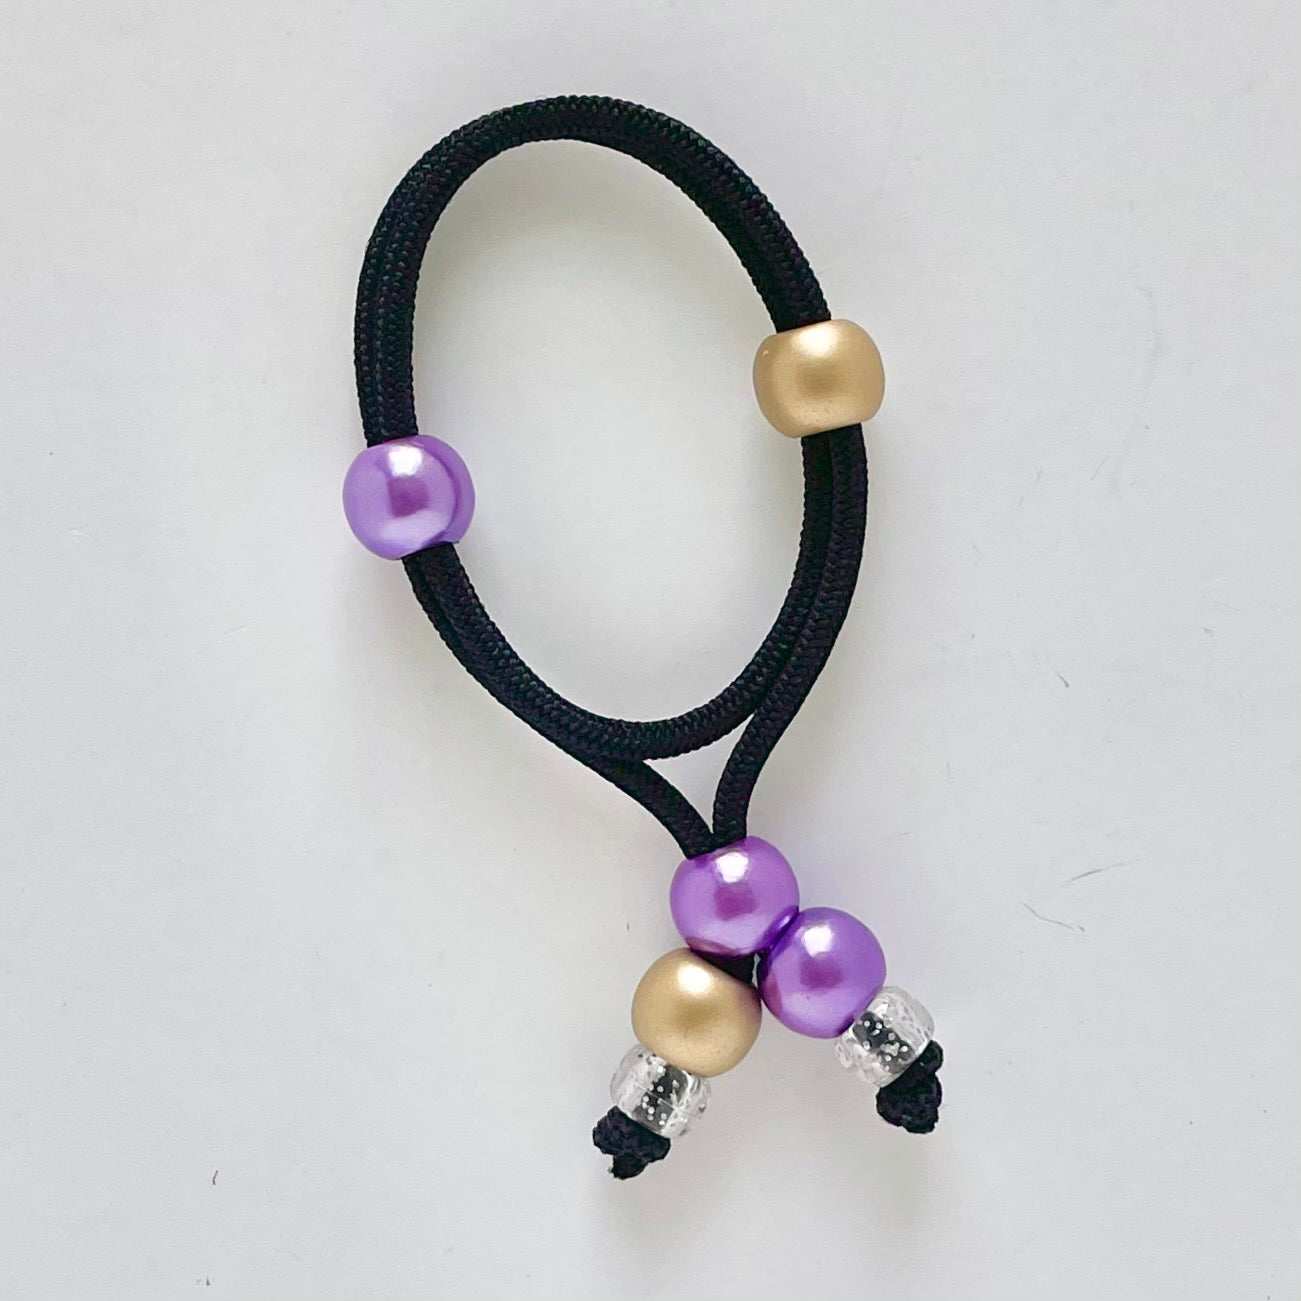 Our PonyLock hair ties make perfect ponytails quickly and easily.  Our PonyLock hair ties are comfortable and they create a tight hold for all hair types.  Our PonyLock hair ties won't stretch out, break or damage your hair.